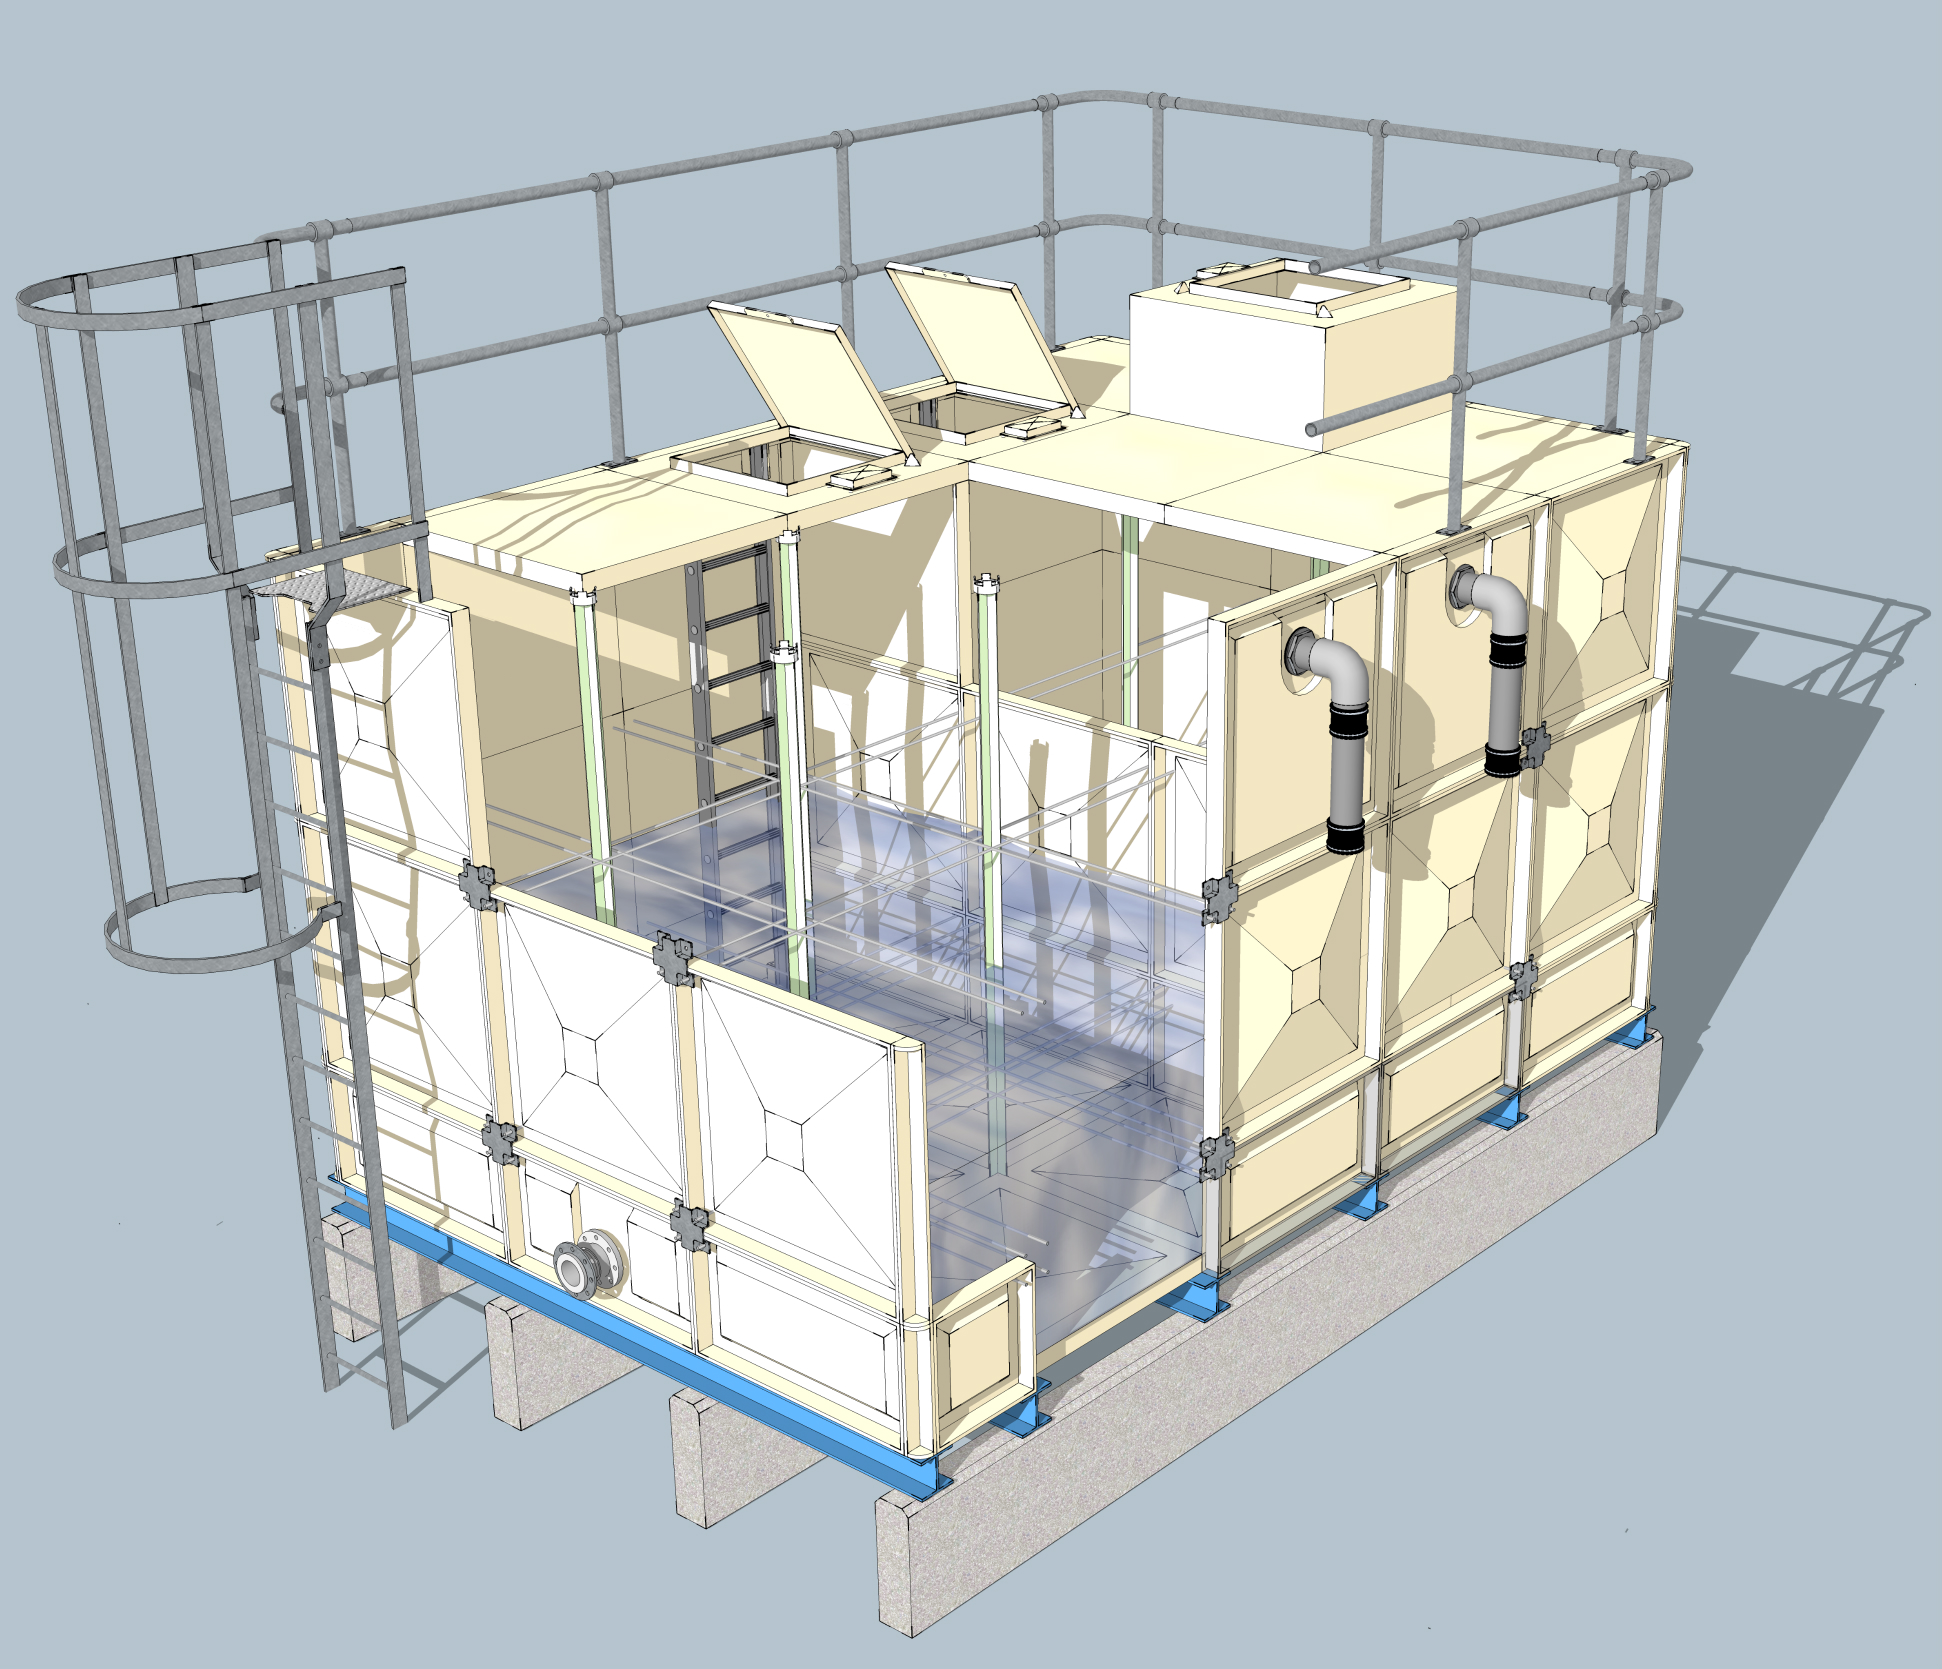 Sectional Water Tank Components 3d Image Of Safety Features